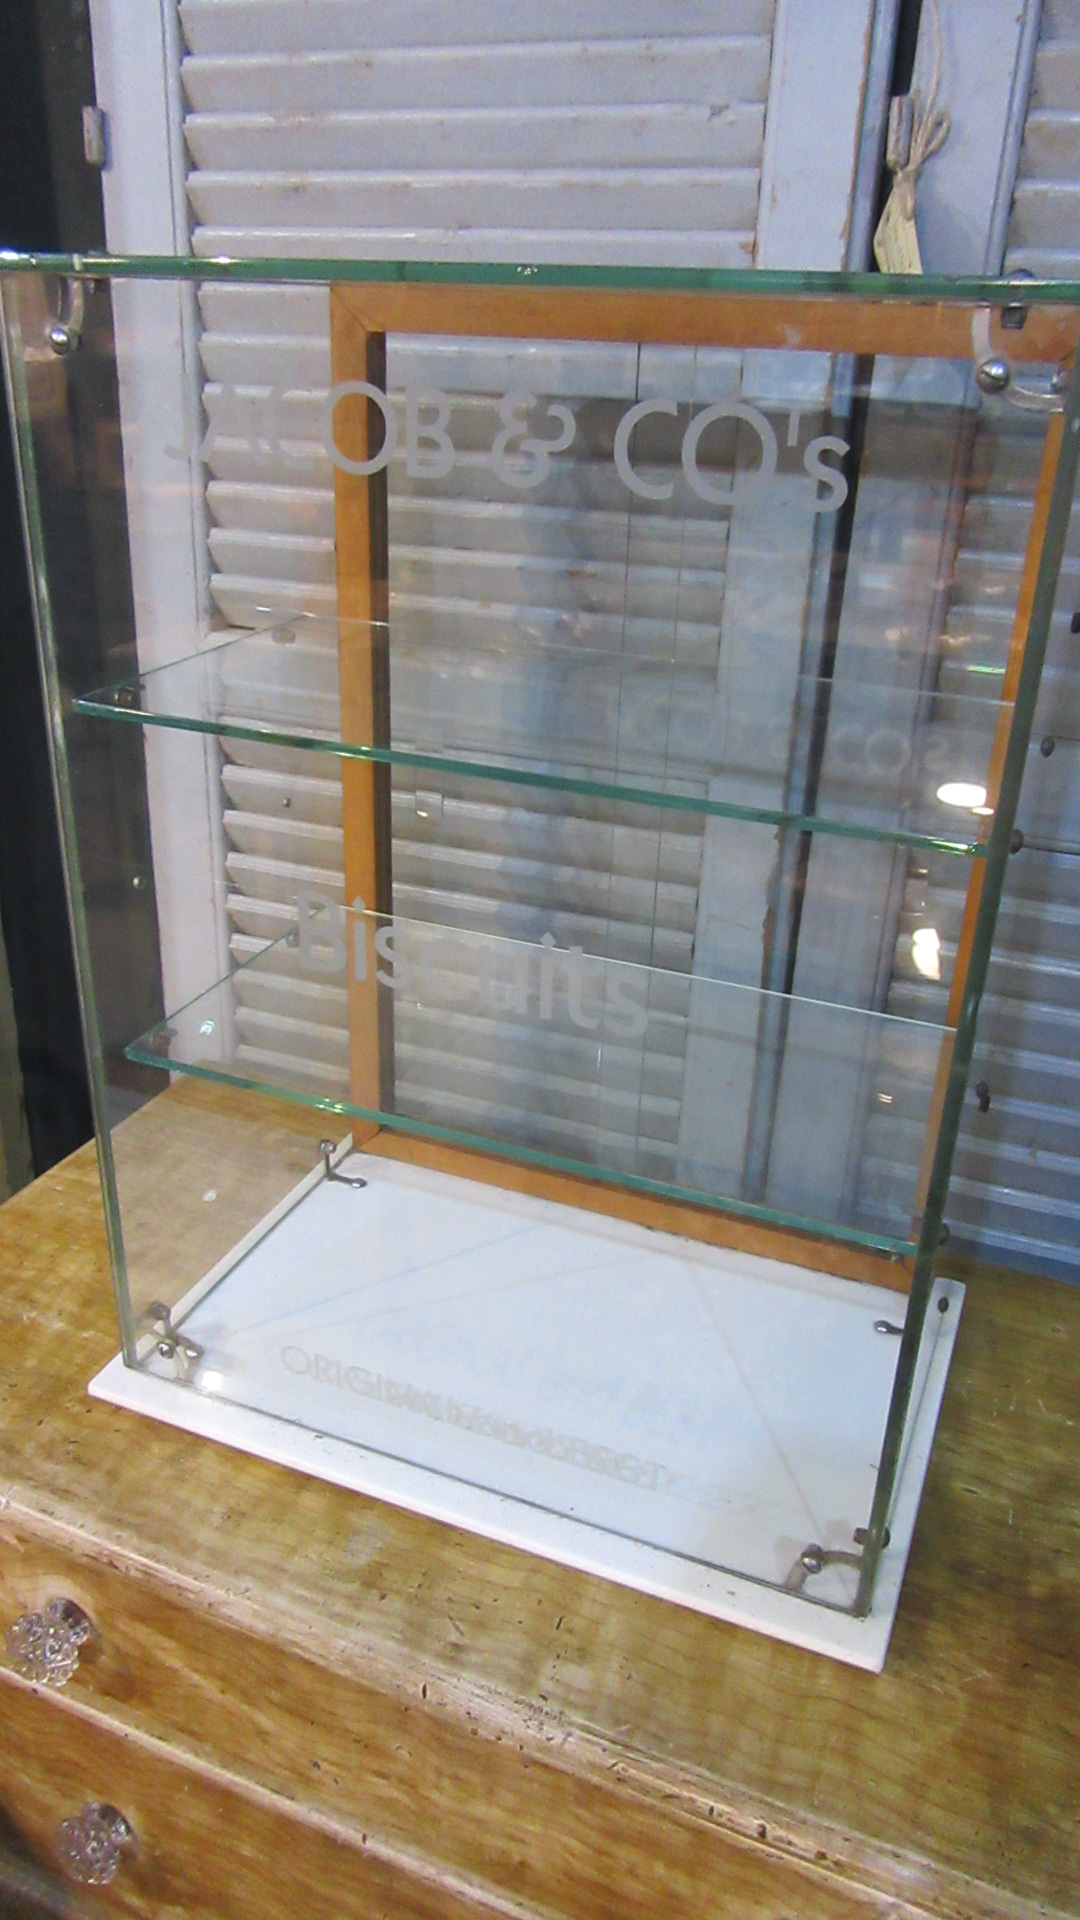 ORIGINAL VINTAGE JACOBS BISCUITS SHOP DISPLAY CABINET